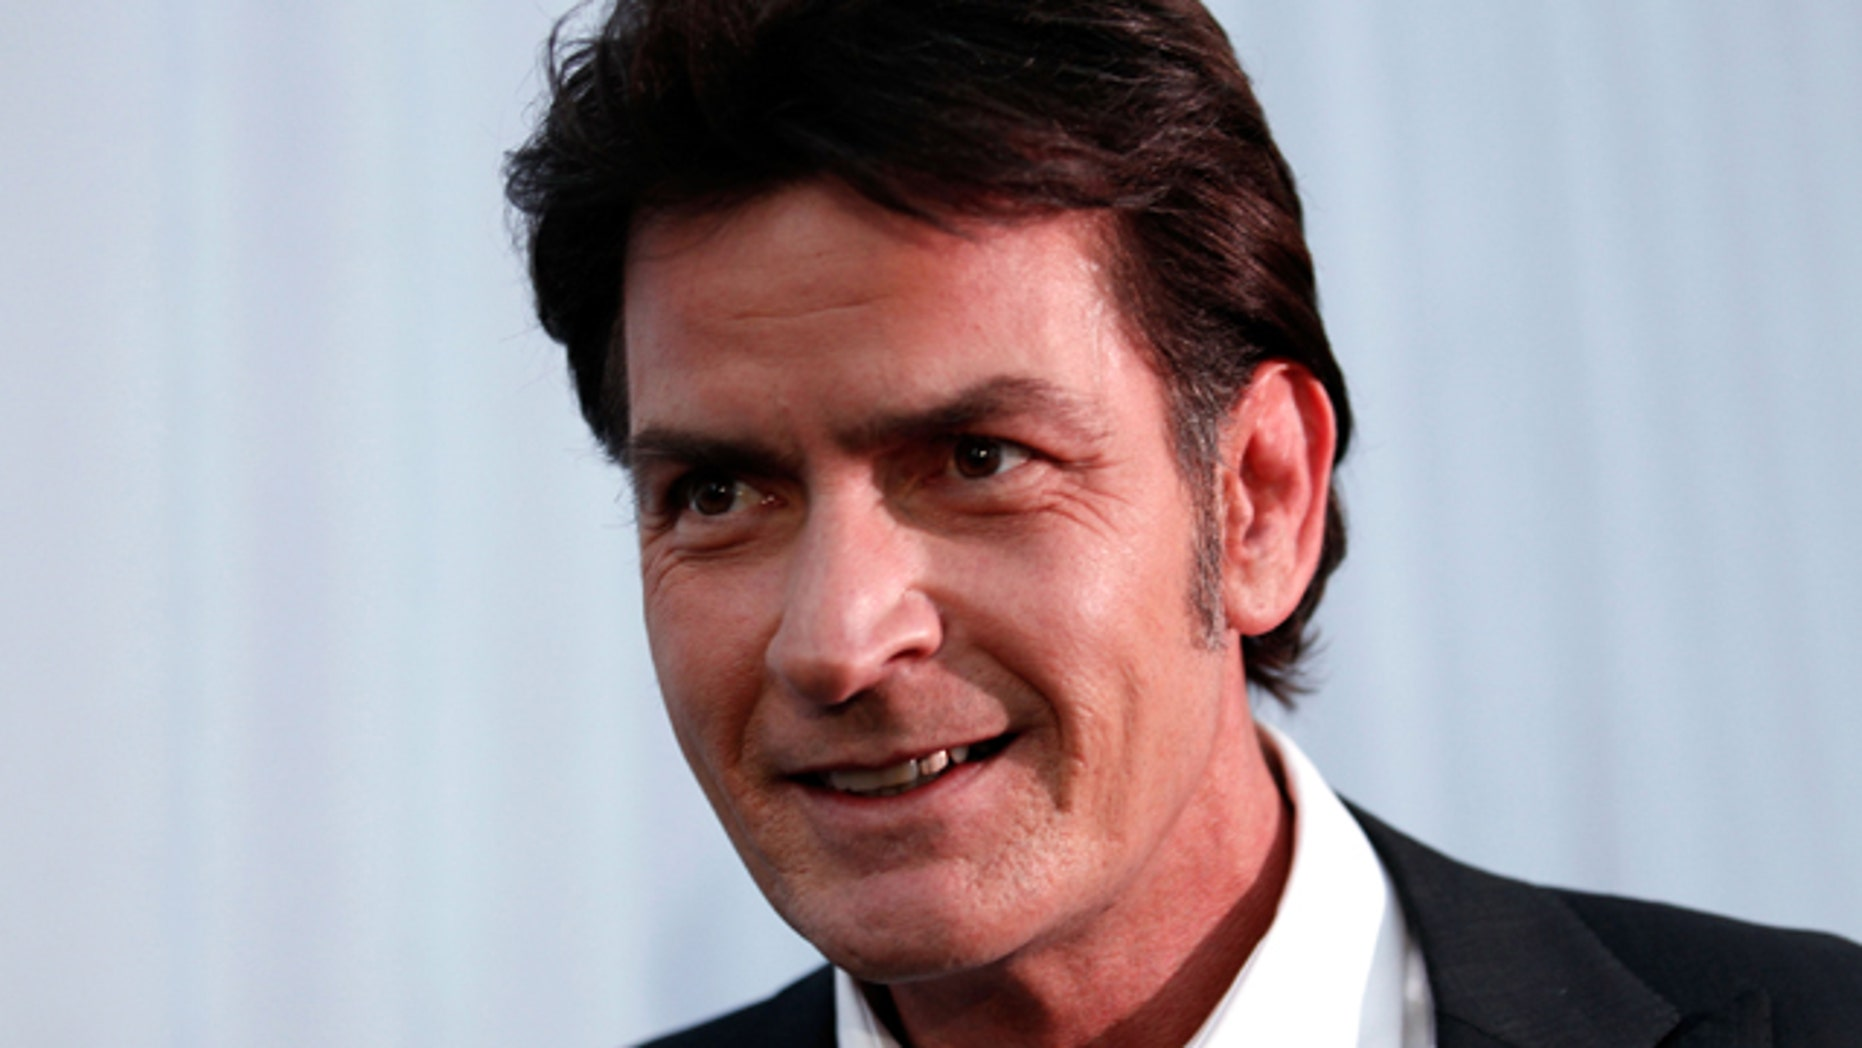 arrives at Comedy Central's Roast of Charlie Sheen held at Sony Studios on September 10, 2011 in Los Angeles, California.